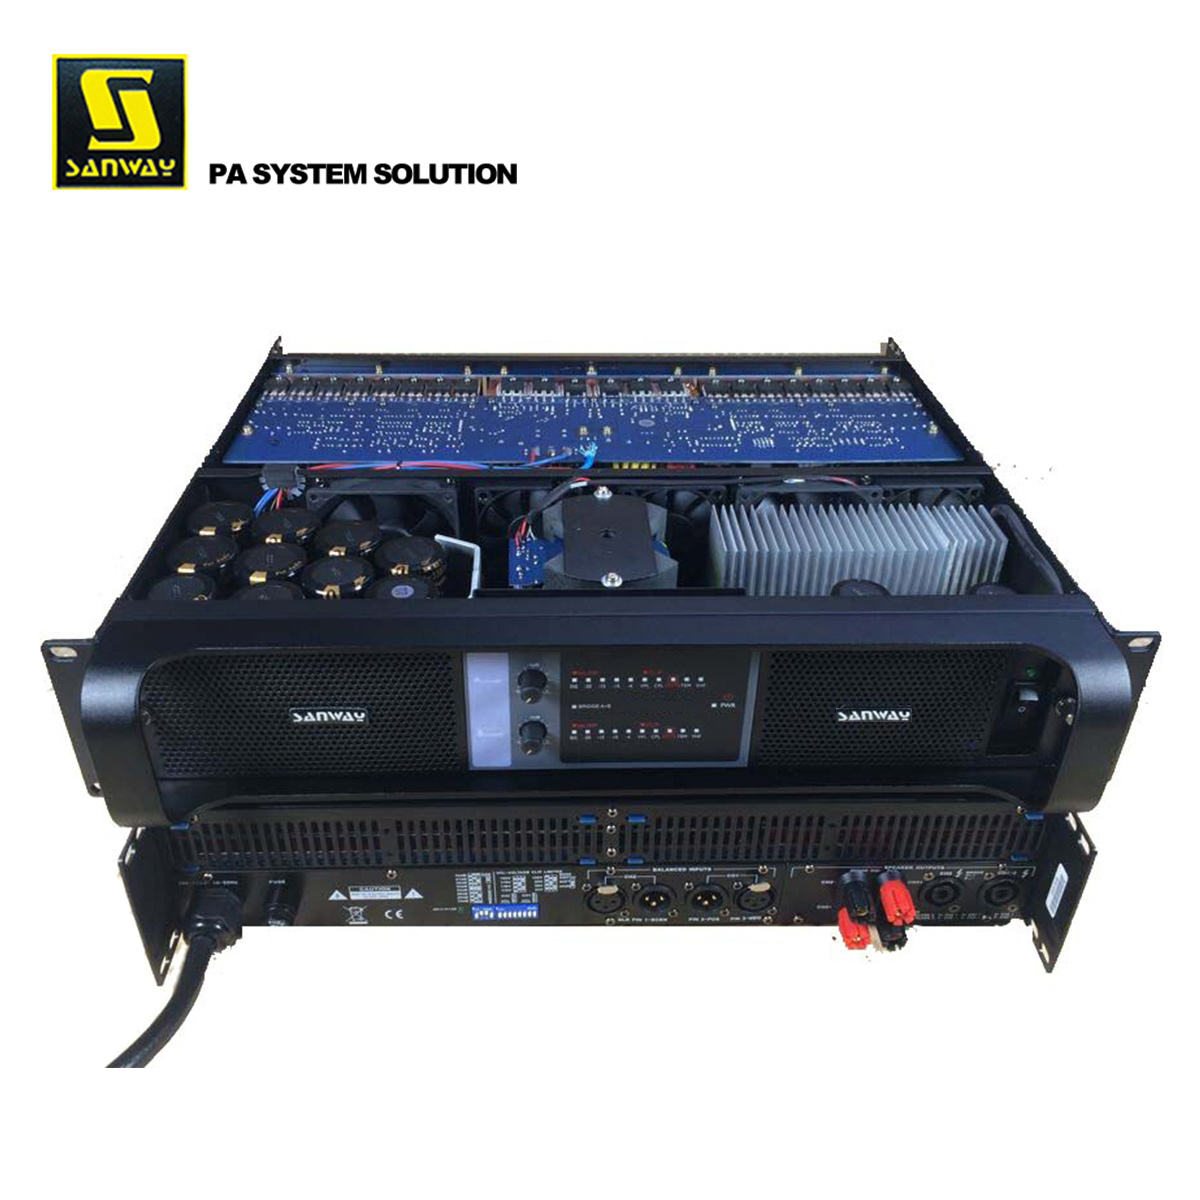 SA-14K 2 Channel 14000 Watt Profesional Switching Power Amplifier